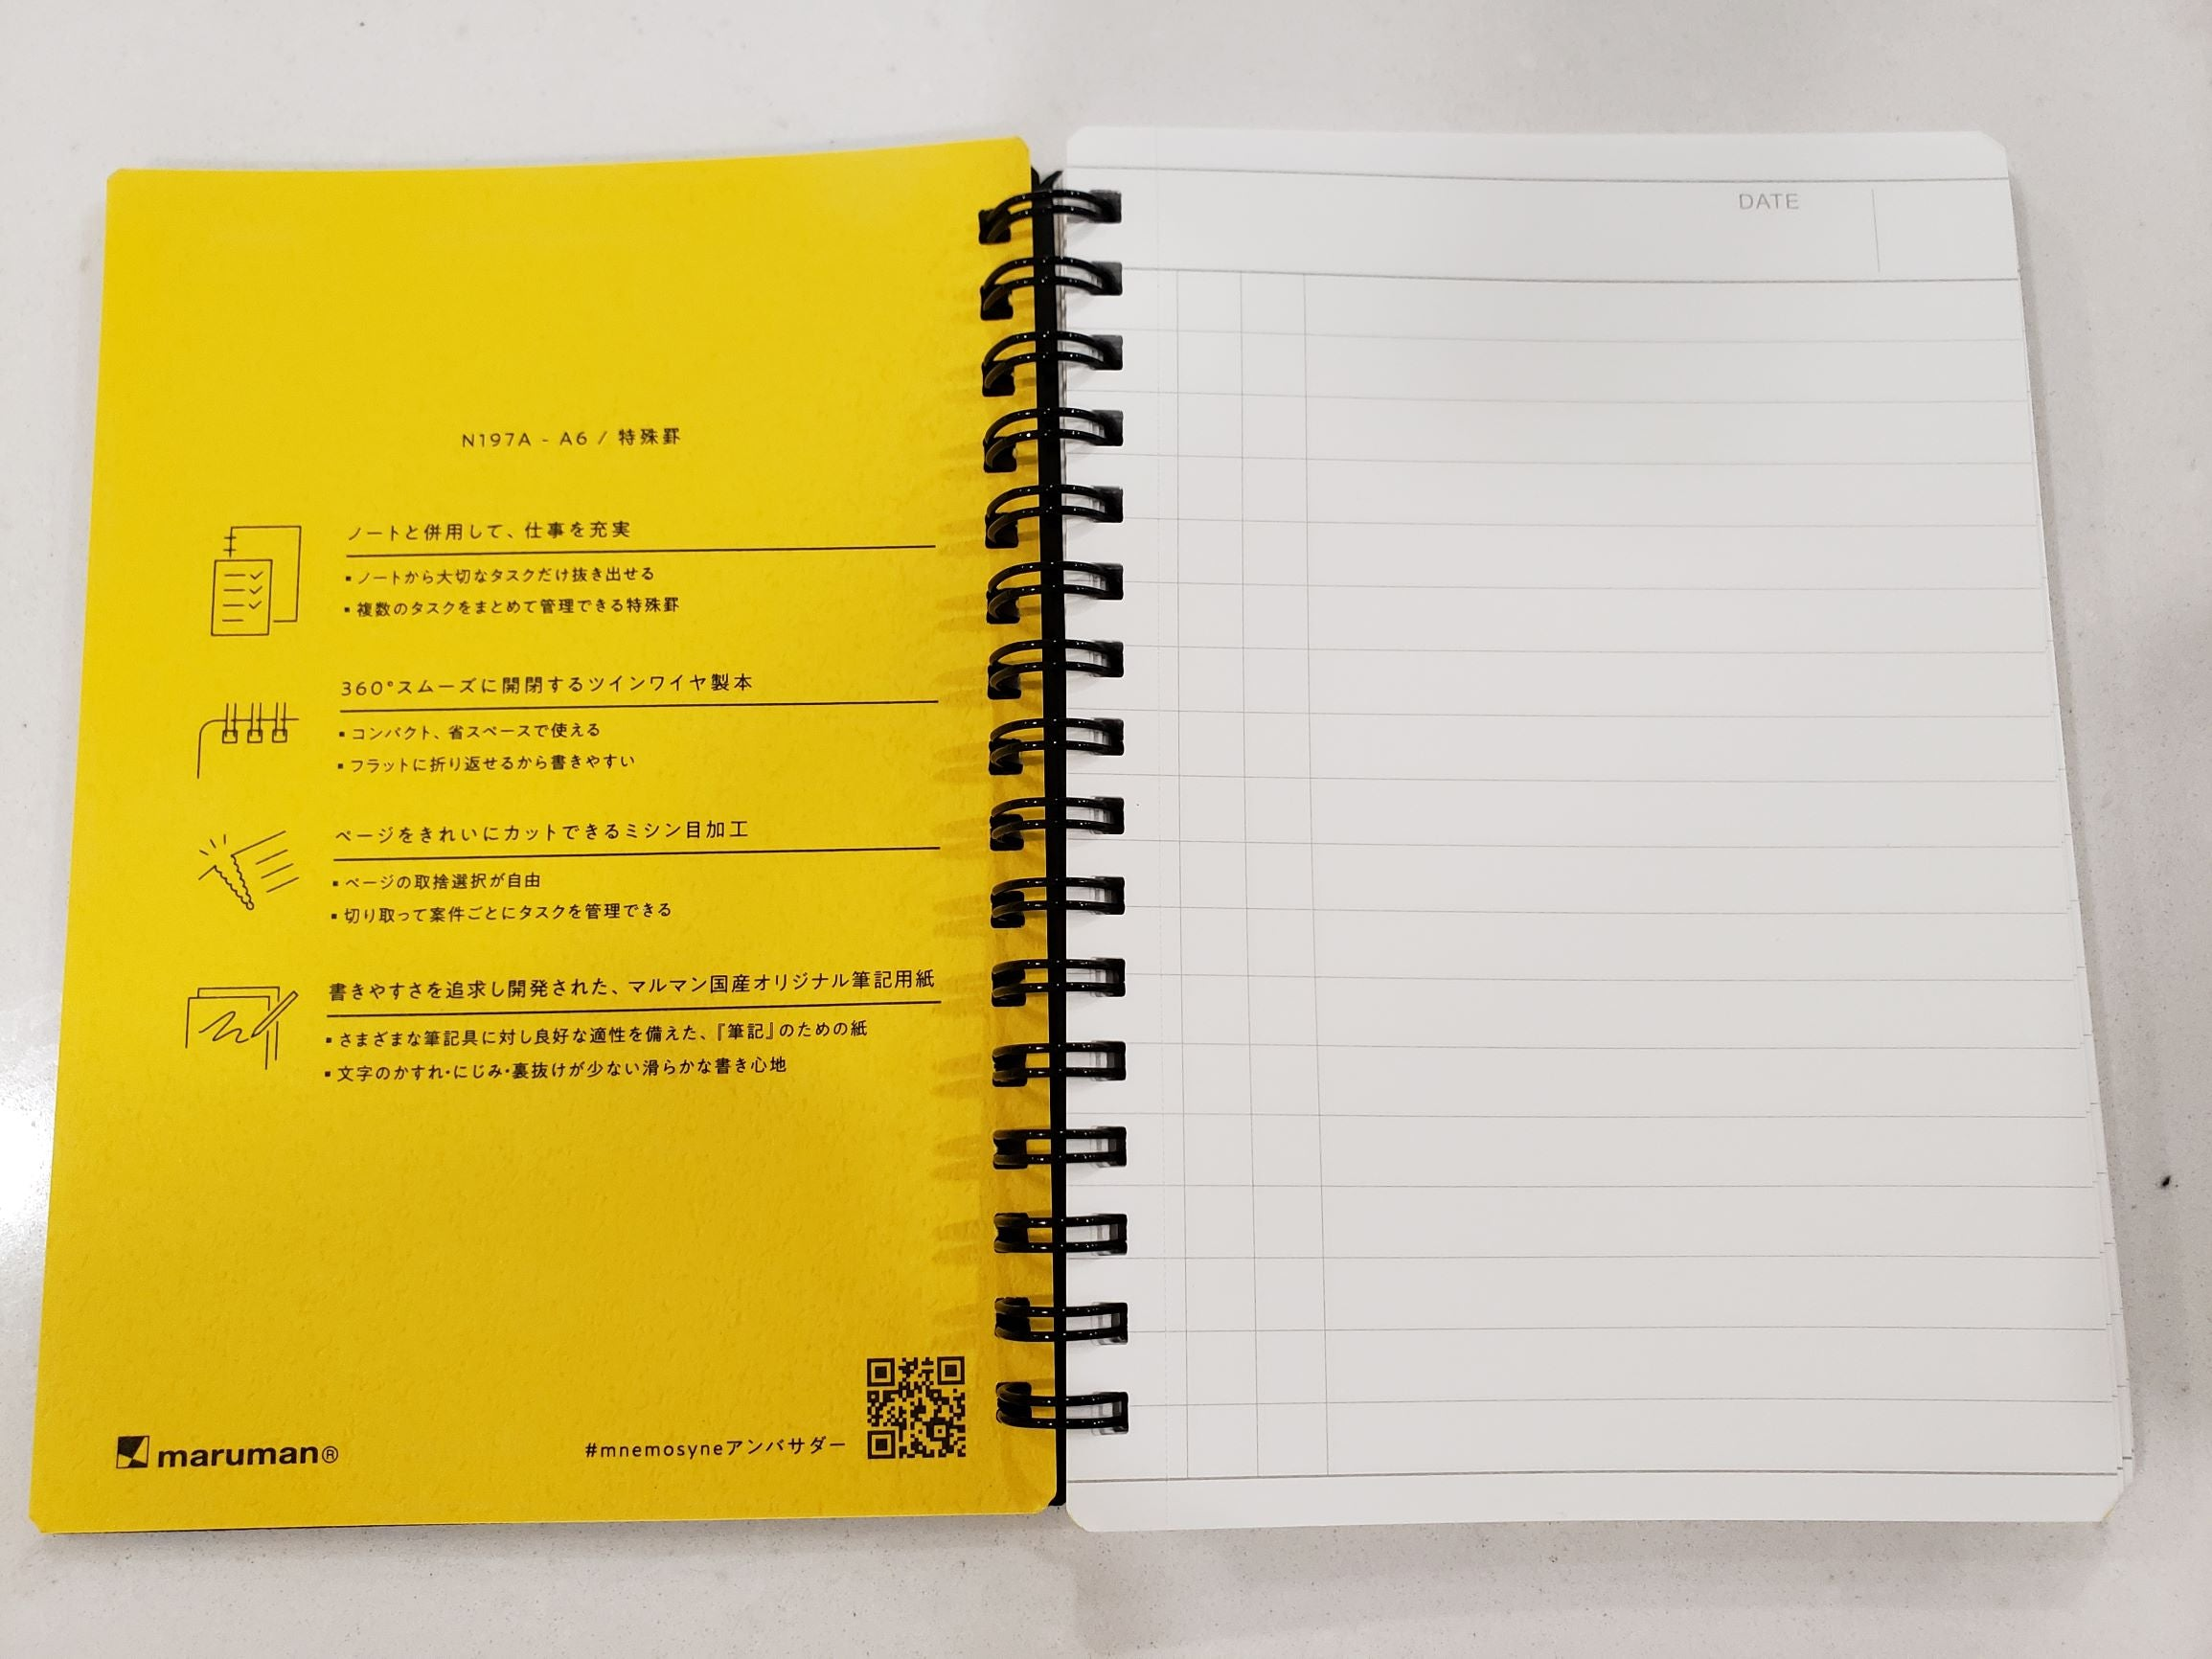 Maruman N197A Today's Act Notebook A6 Pocket Size